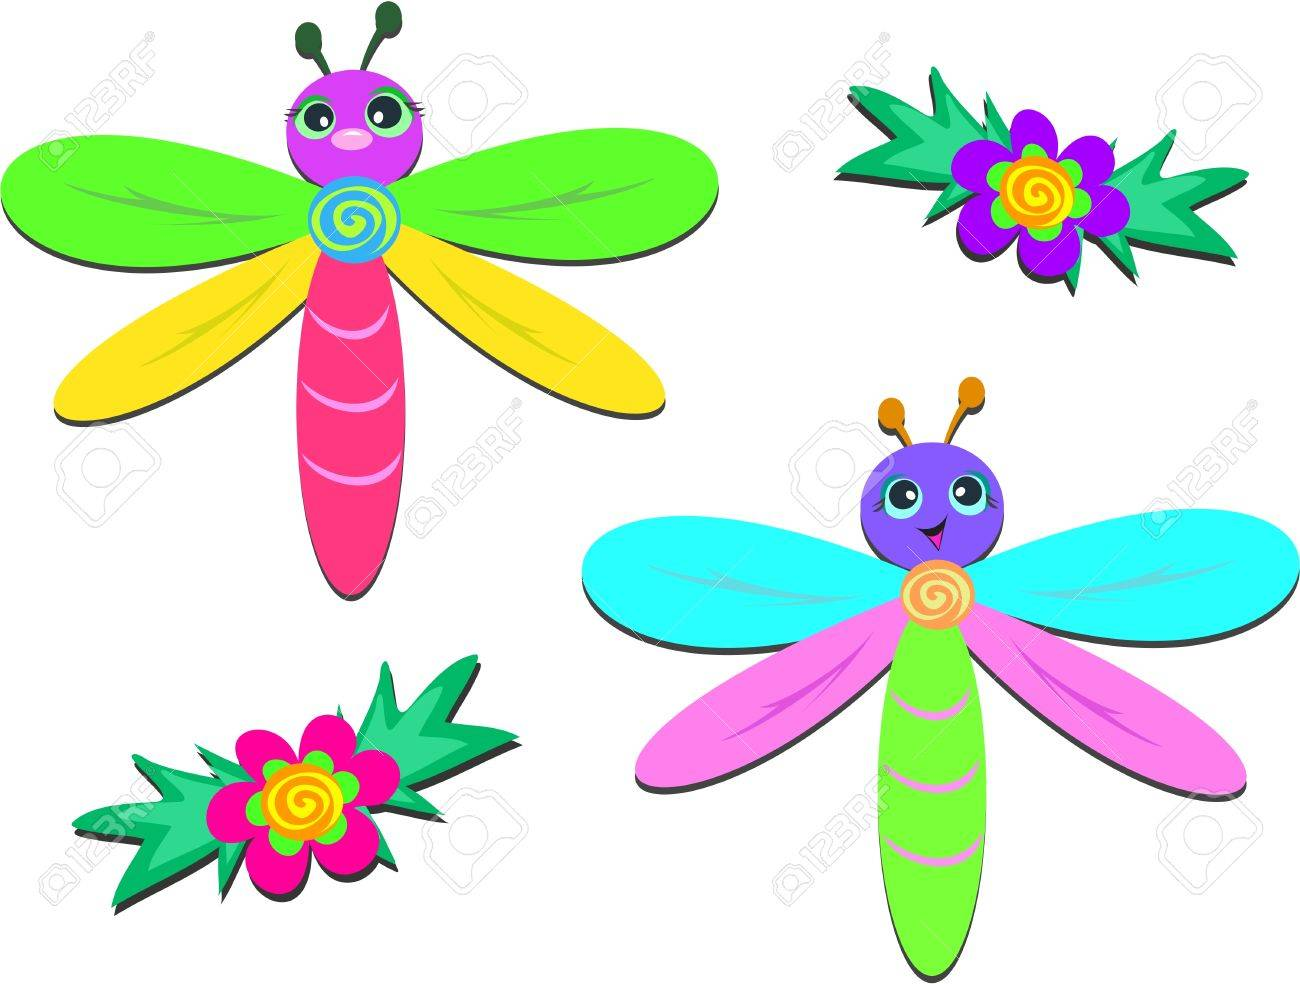 mix of baby dragonflies and flowers royalty free cliparts vectors